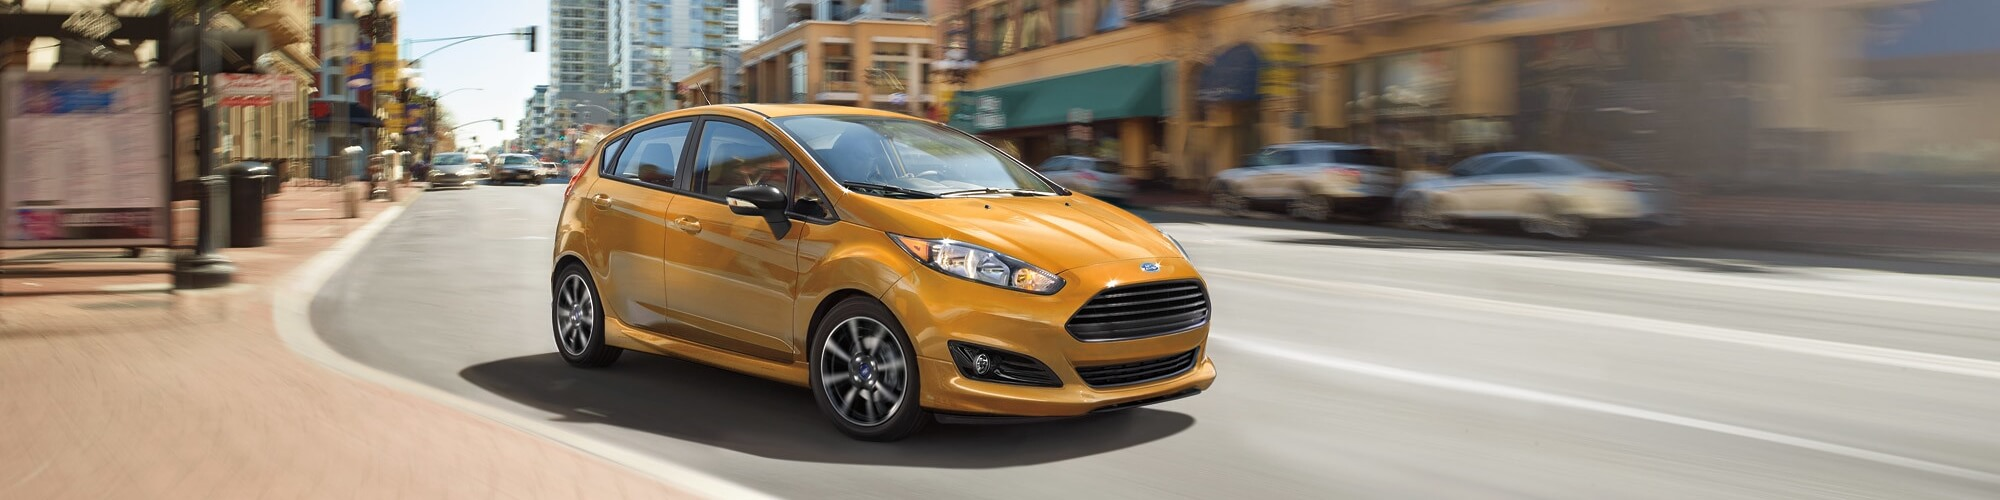 2016 Ford Fiesta Overview in Newport News, VA